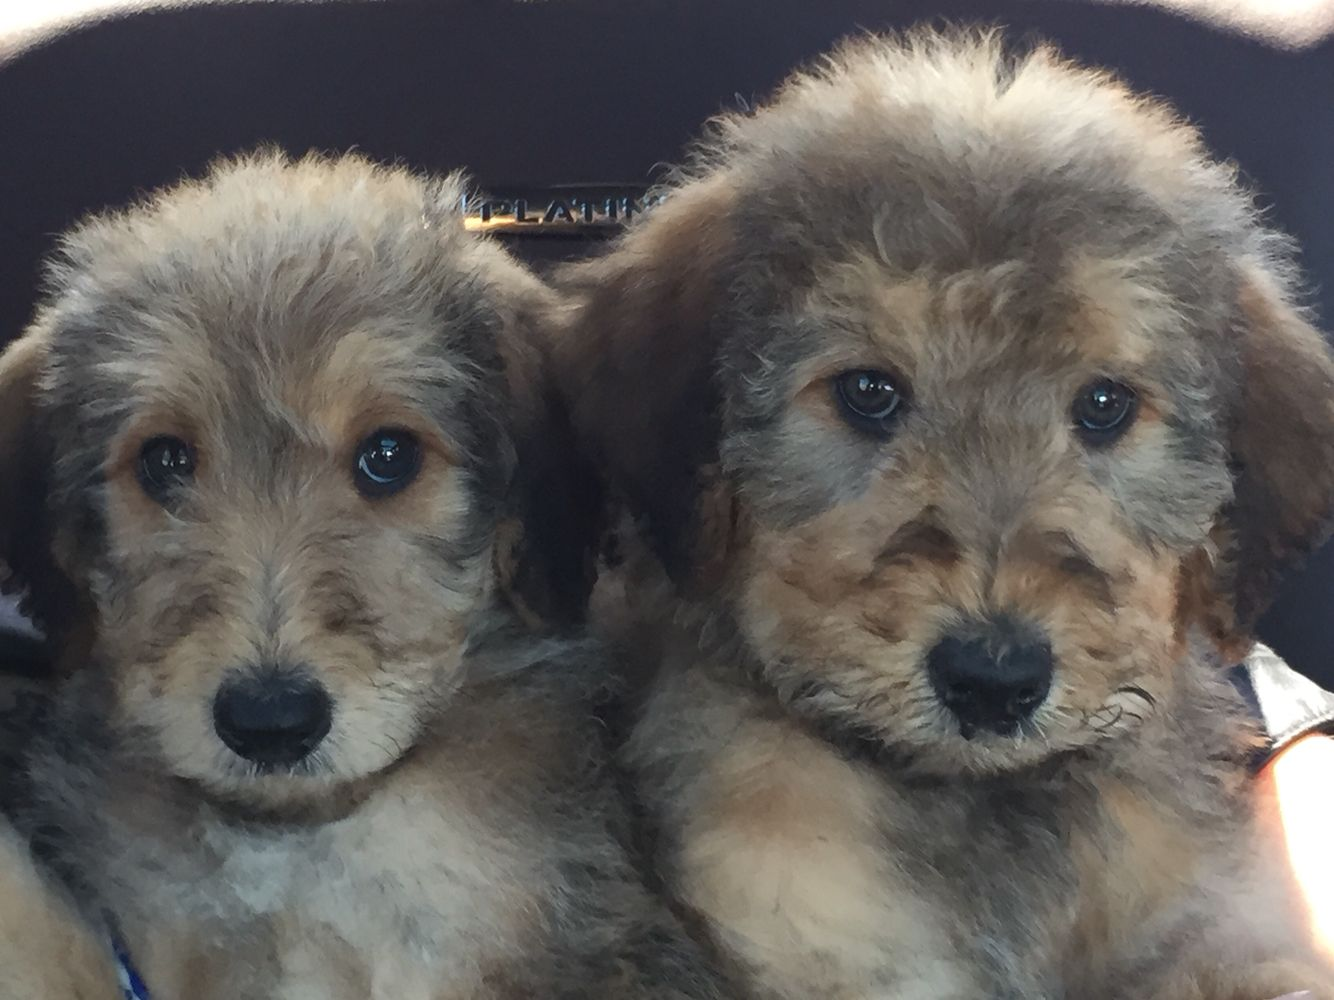 Meet Max and Kash our new Airedoodle puppies. Soooo stinkin cute ...